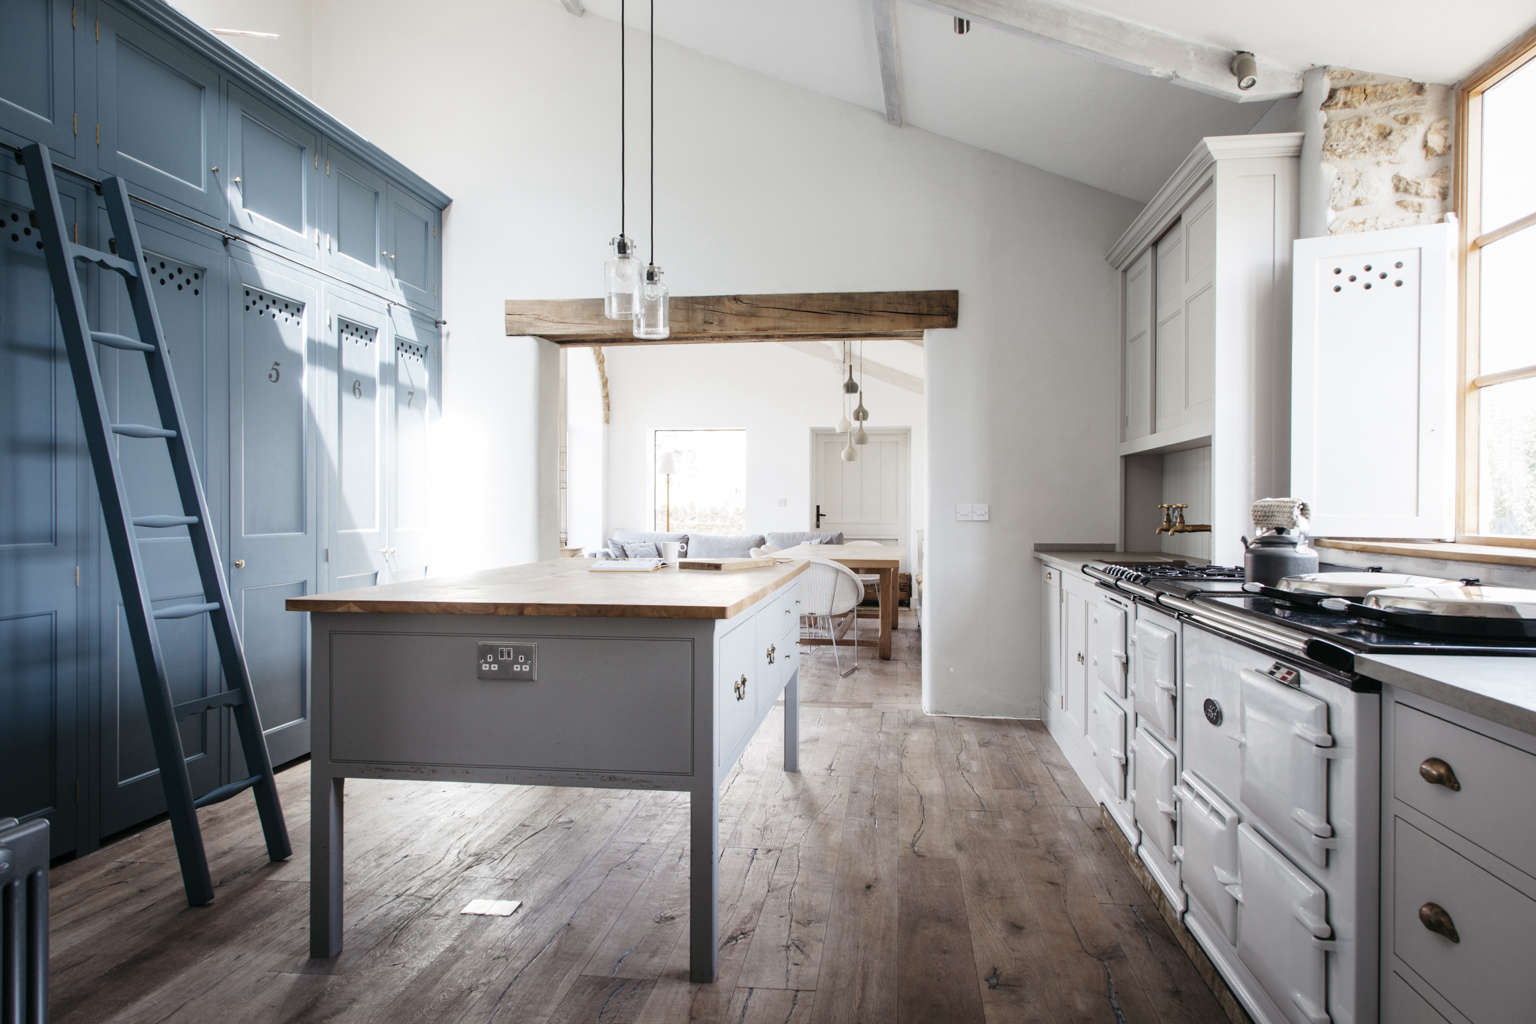 A Dorset Farmhouse Kitchen By Plain English